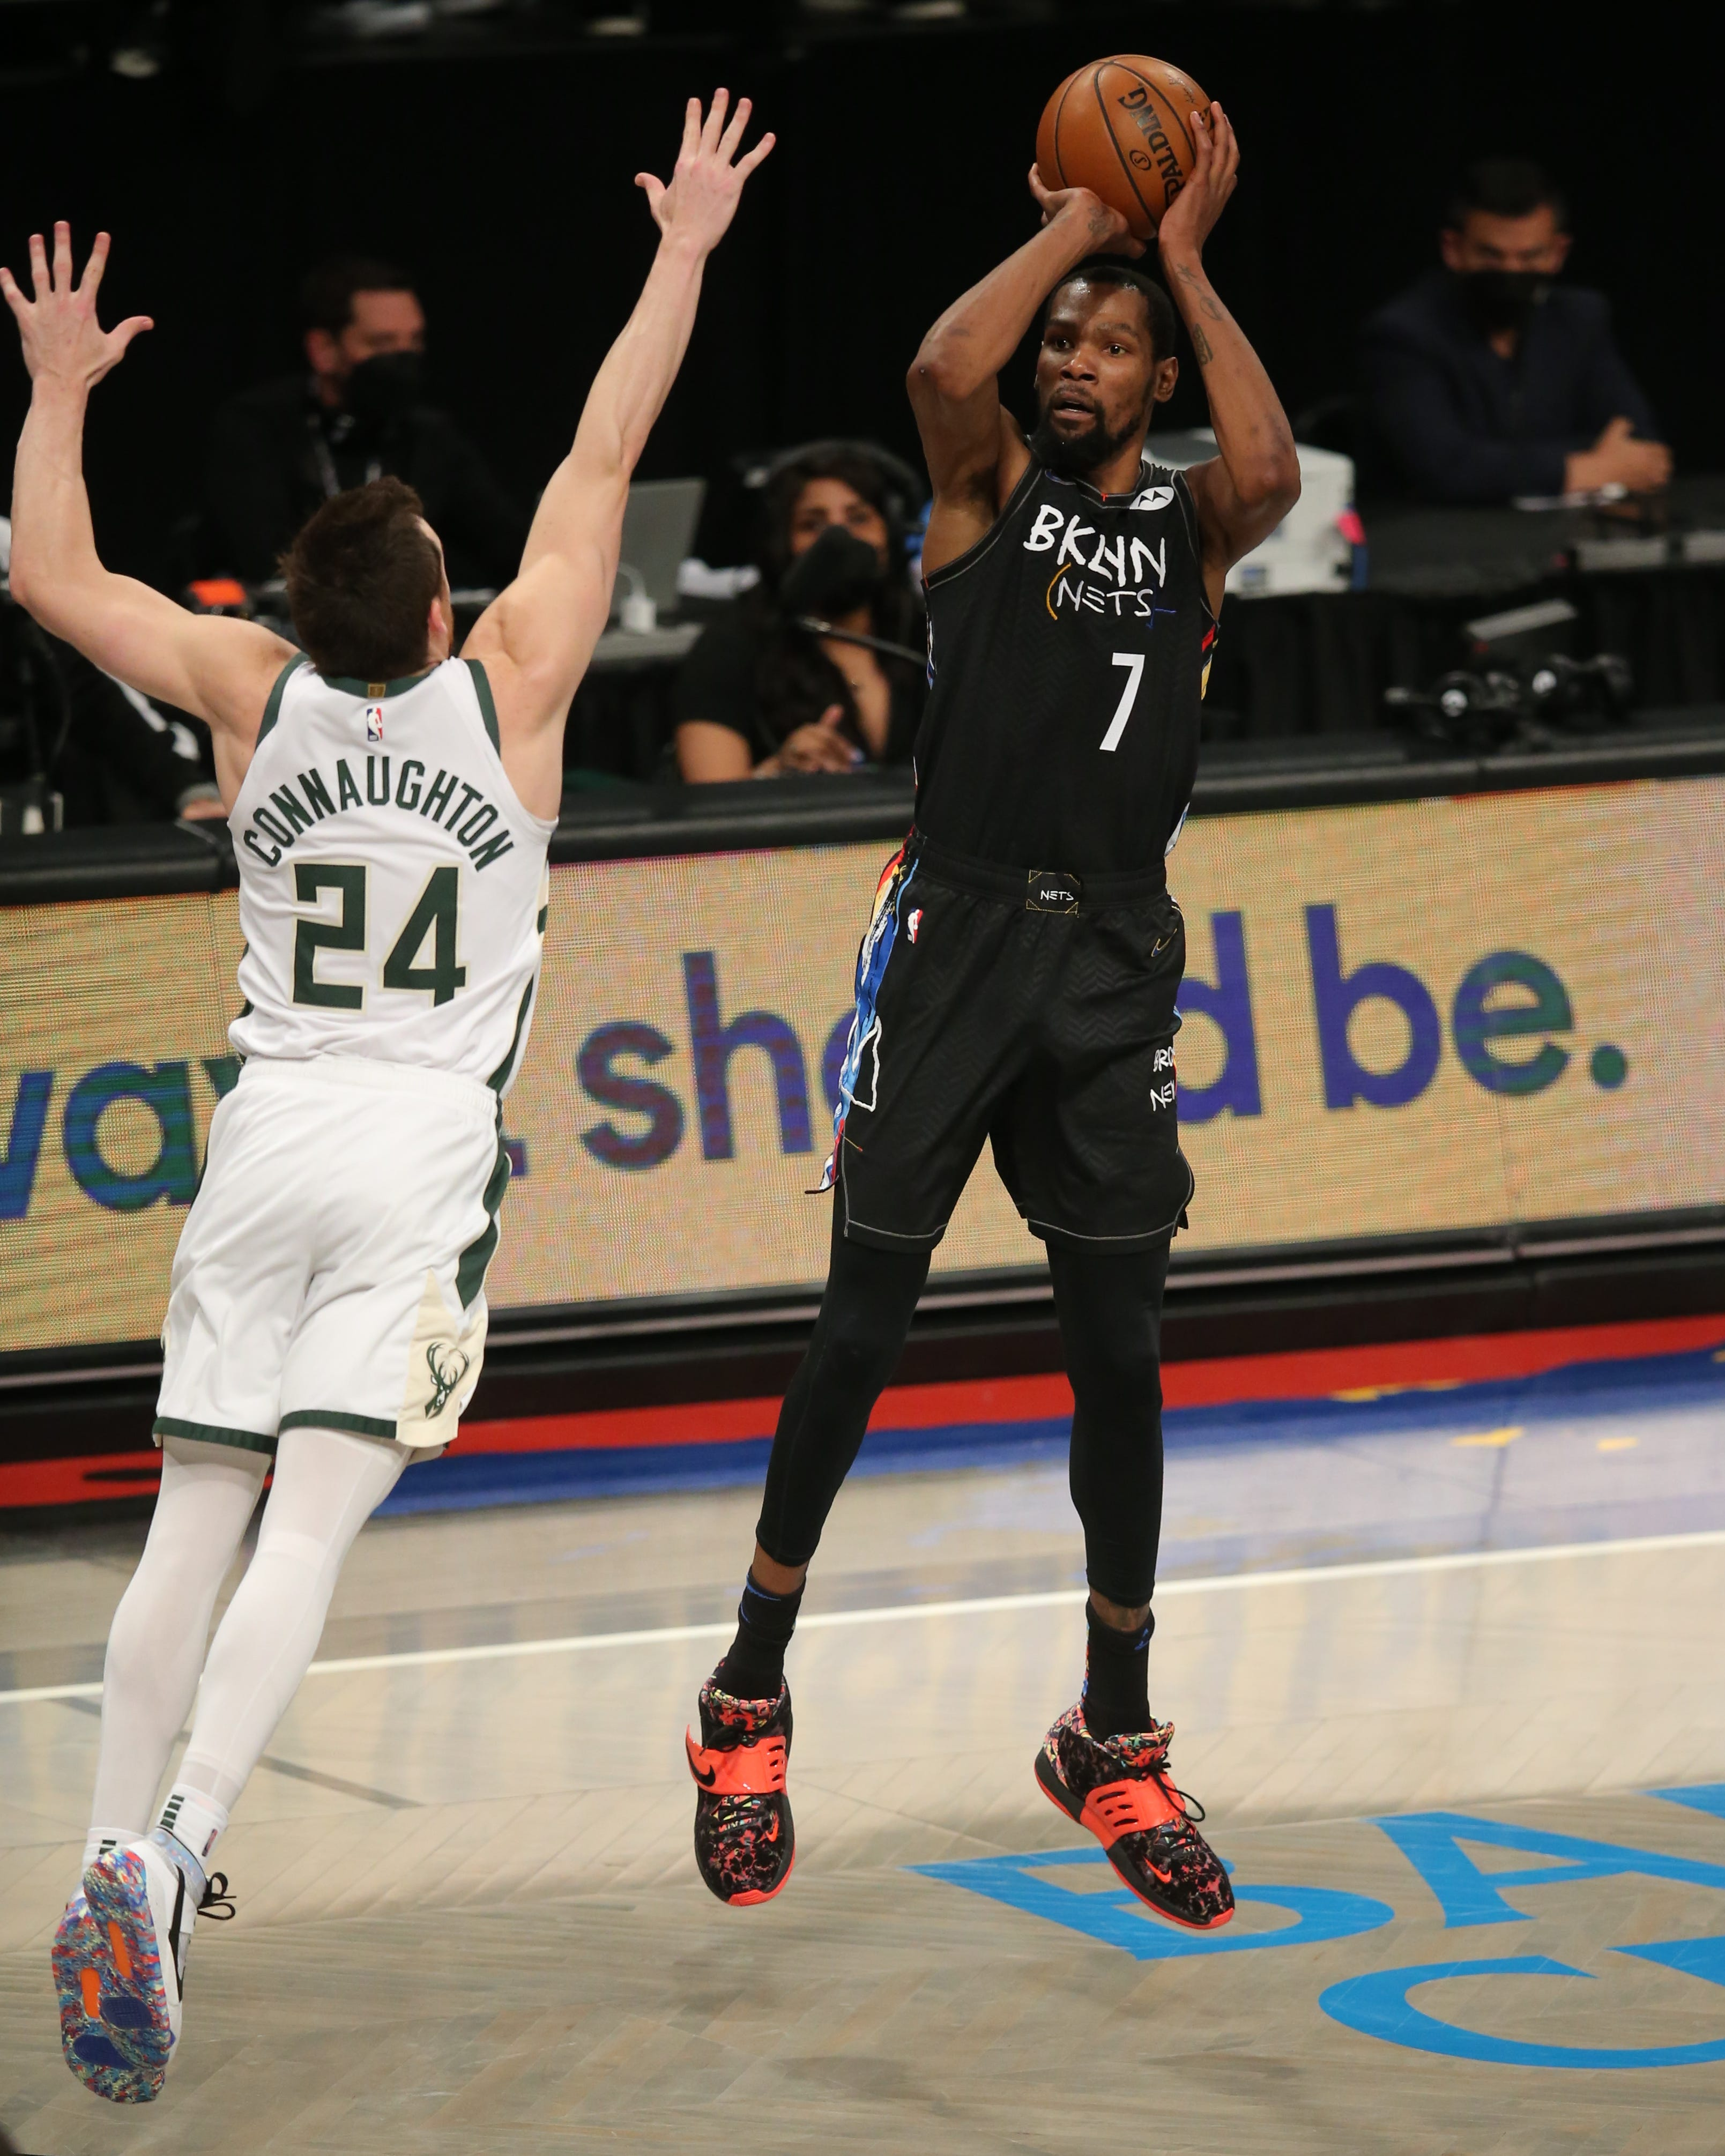 Nets rally past Bucks in Game 5 on Kevin Durant s historic performance to take 3-2 series lead